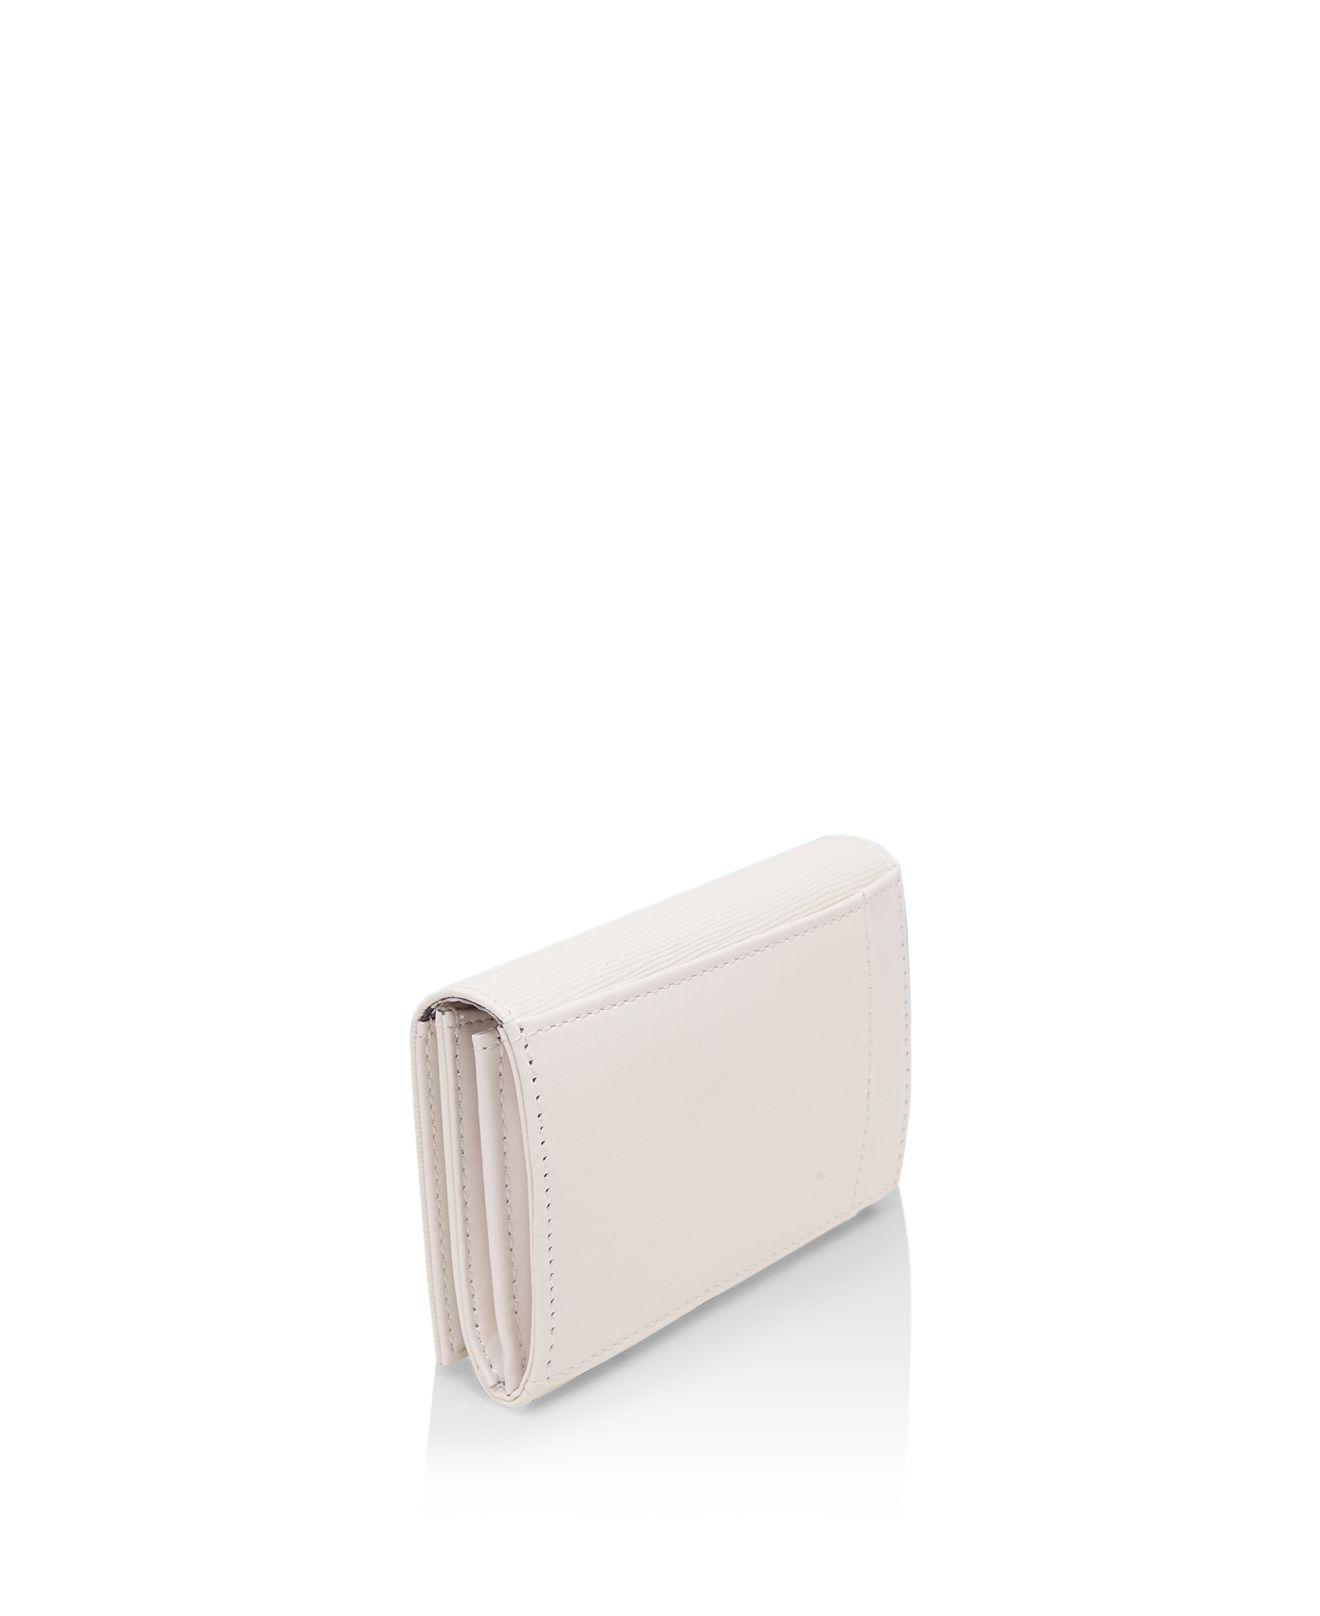 59d57fe41fef7 Lyst - Ted Baker Myah Curved Bow Mini Wallet